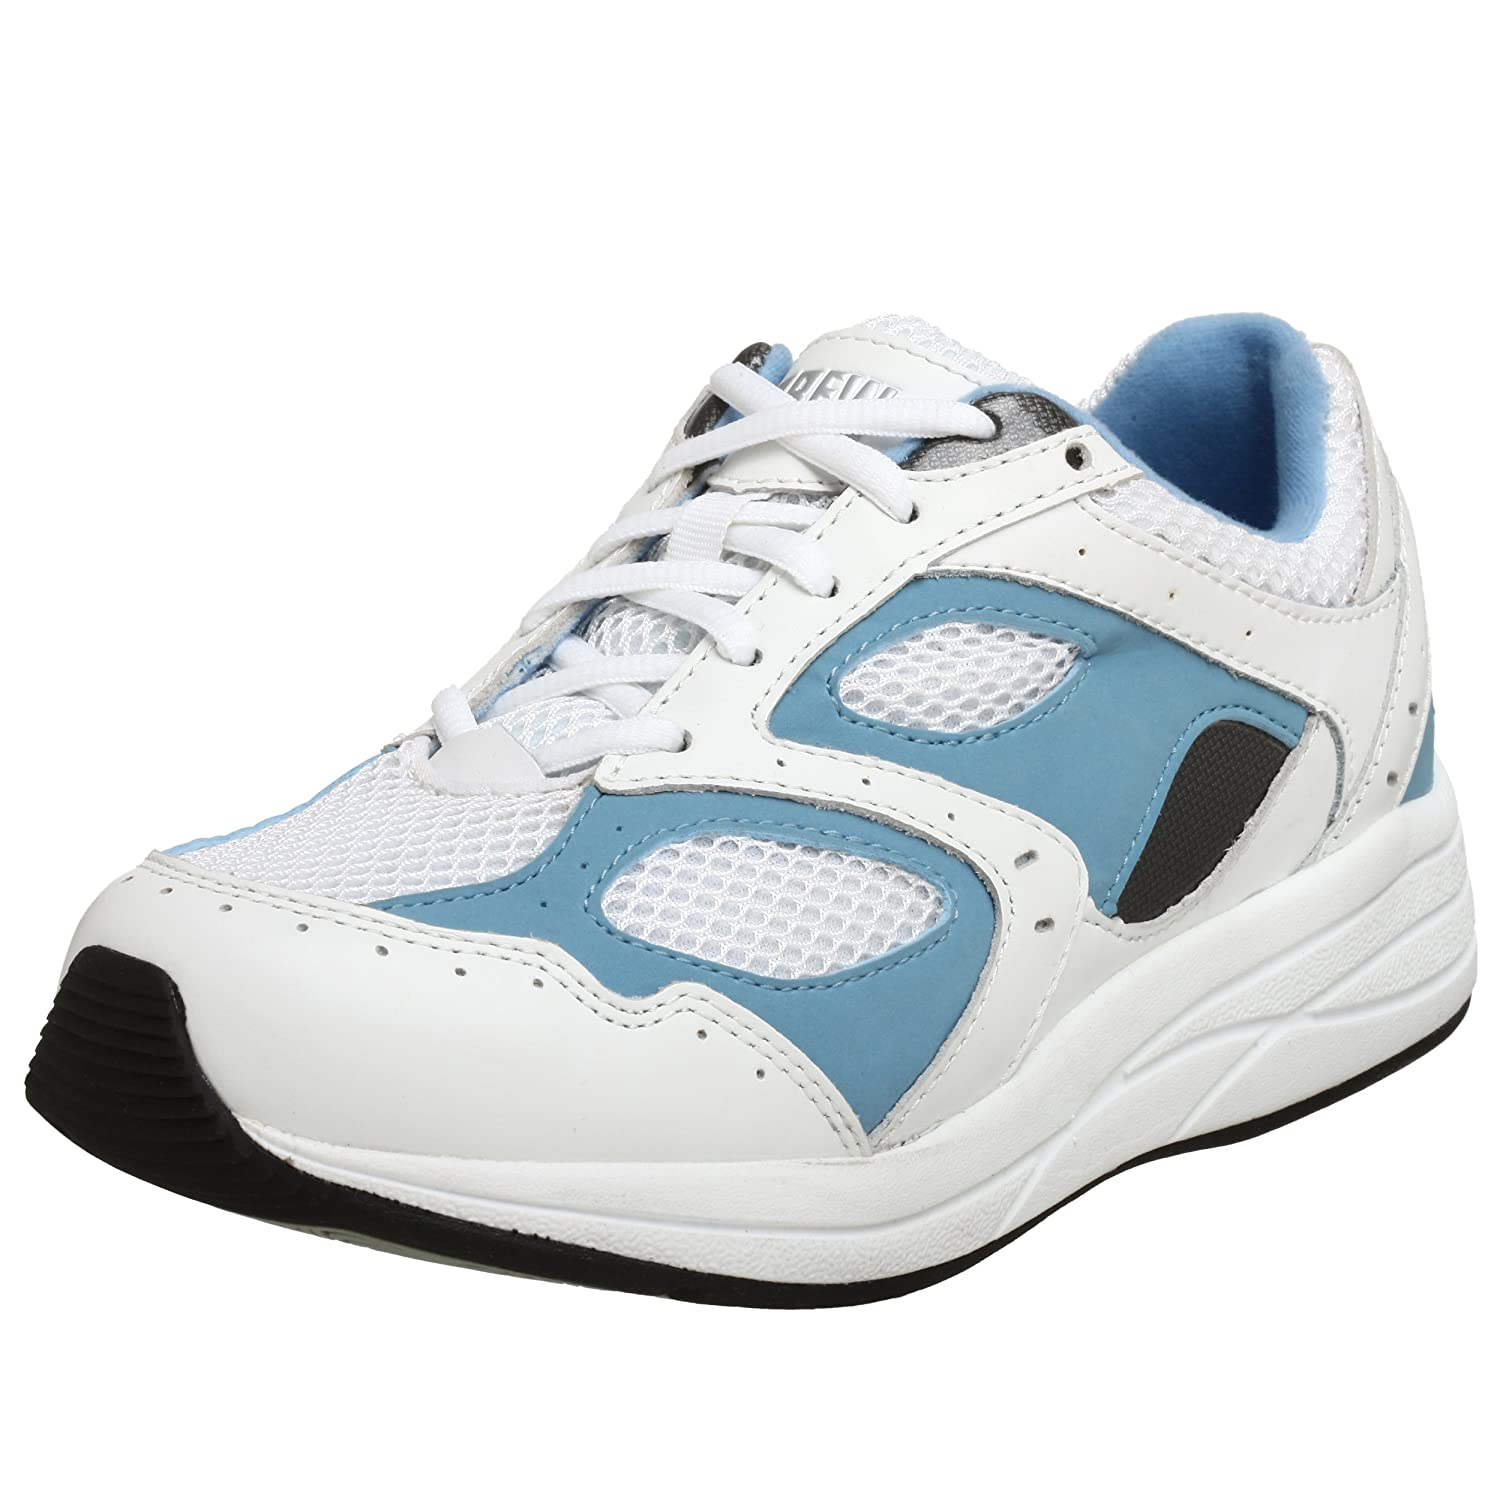 Drew Shoe Women's Flare Walking Shoe B001ATZ0B4 10 W US|White/Blue